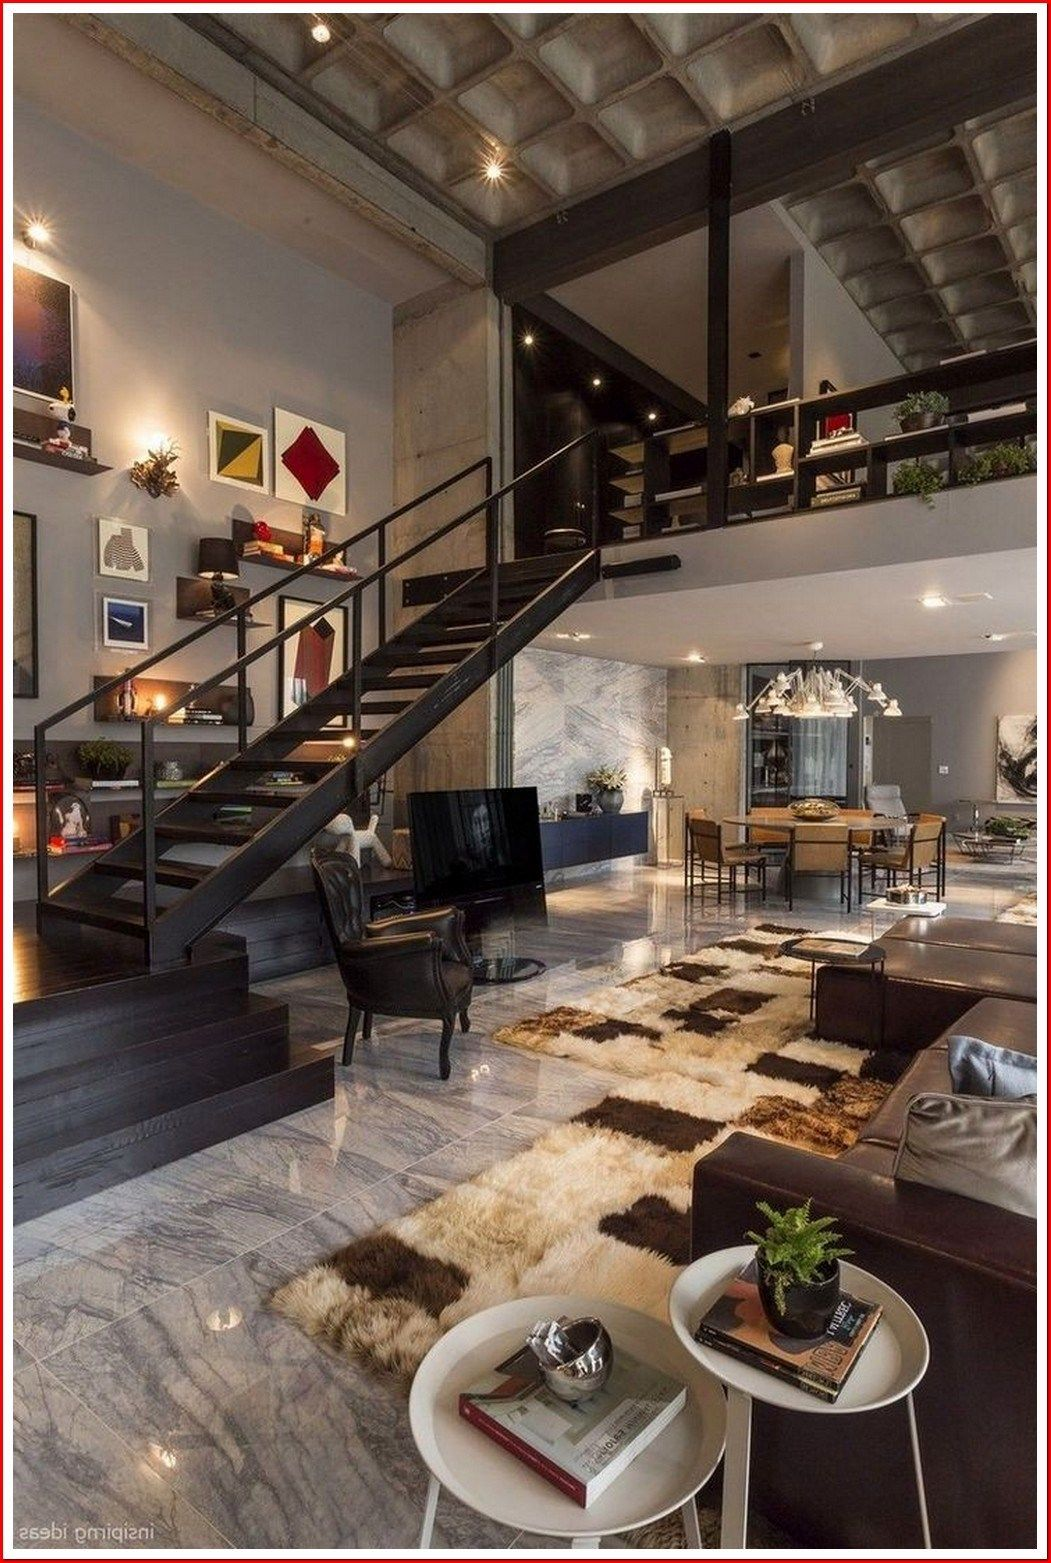 22 Amazing Interior Design Ideas For Modern Loft 00002 In 2020 Industrial Style Living Room Home Interior Design Decor Interior Design